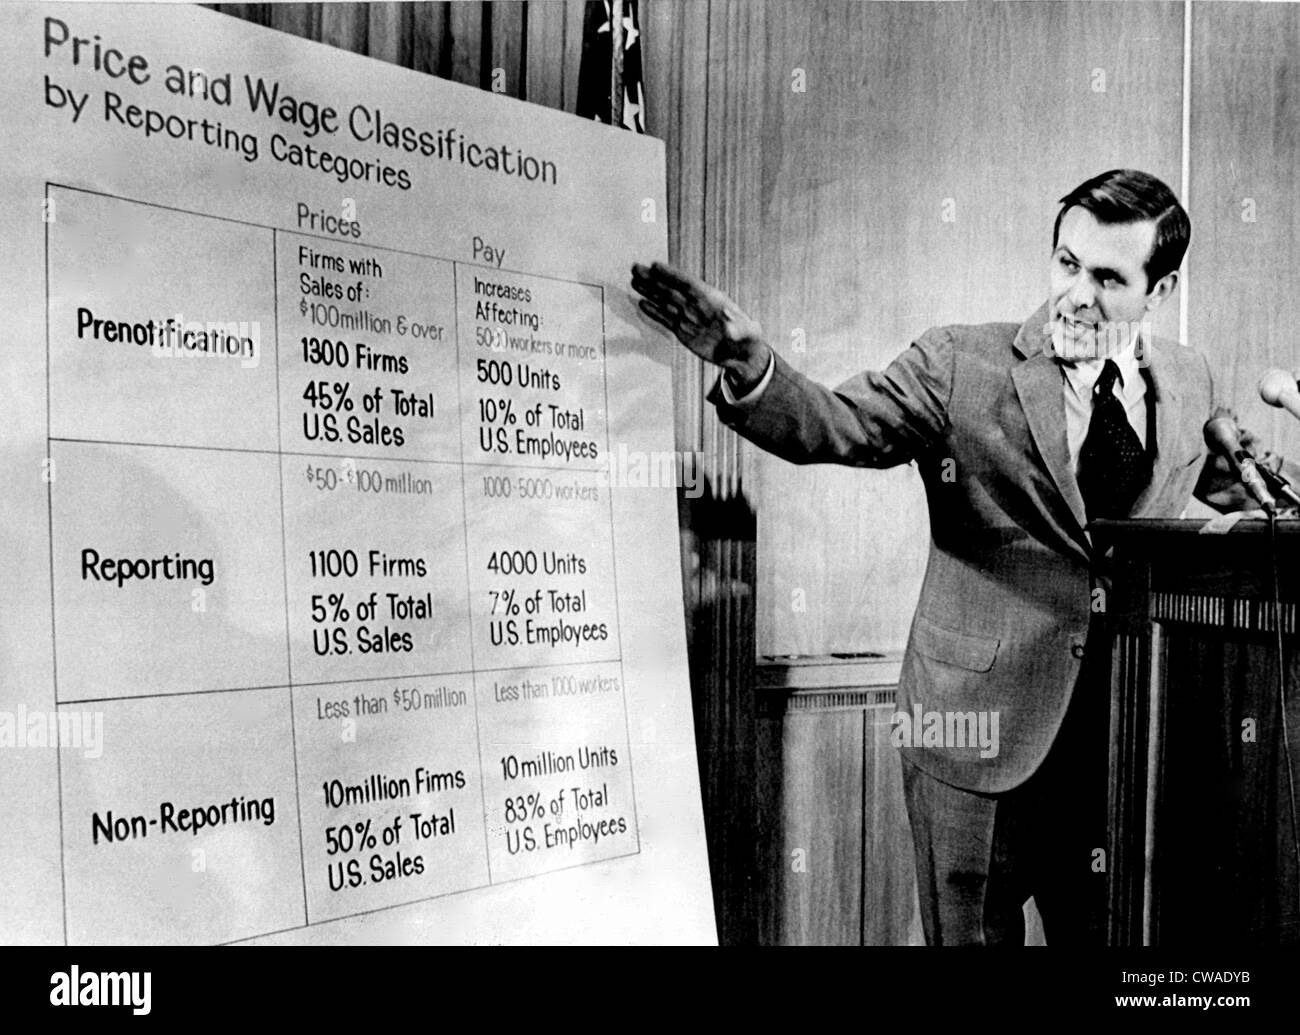 DONALD RUMSFELD, as 'Cost of Living Council' Director during Nixon's campaign news conference, 1971. - Stock Image